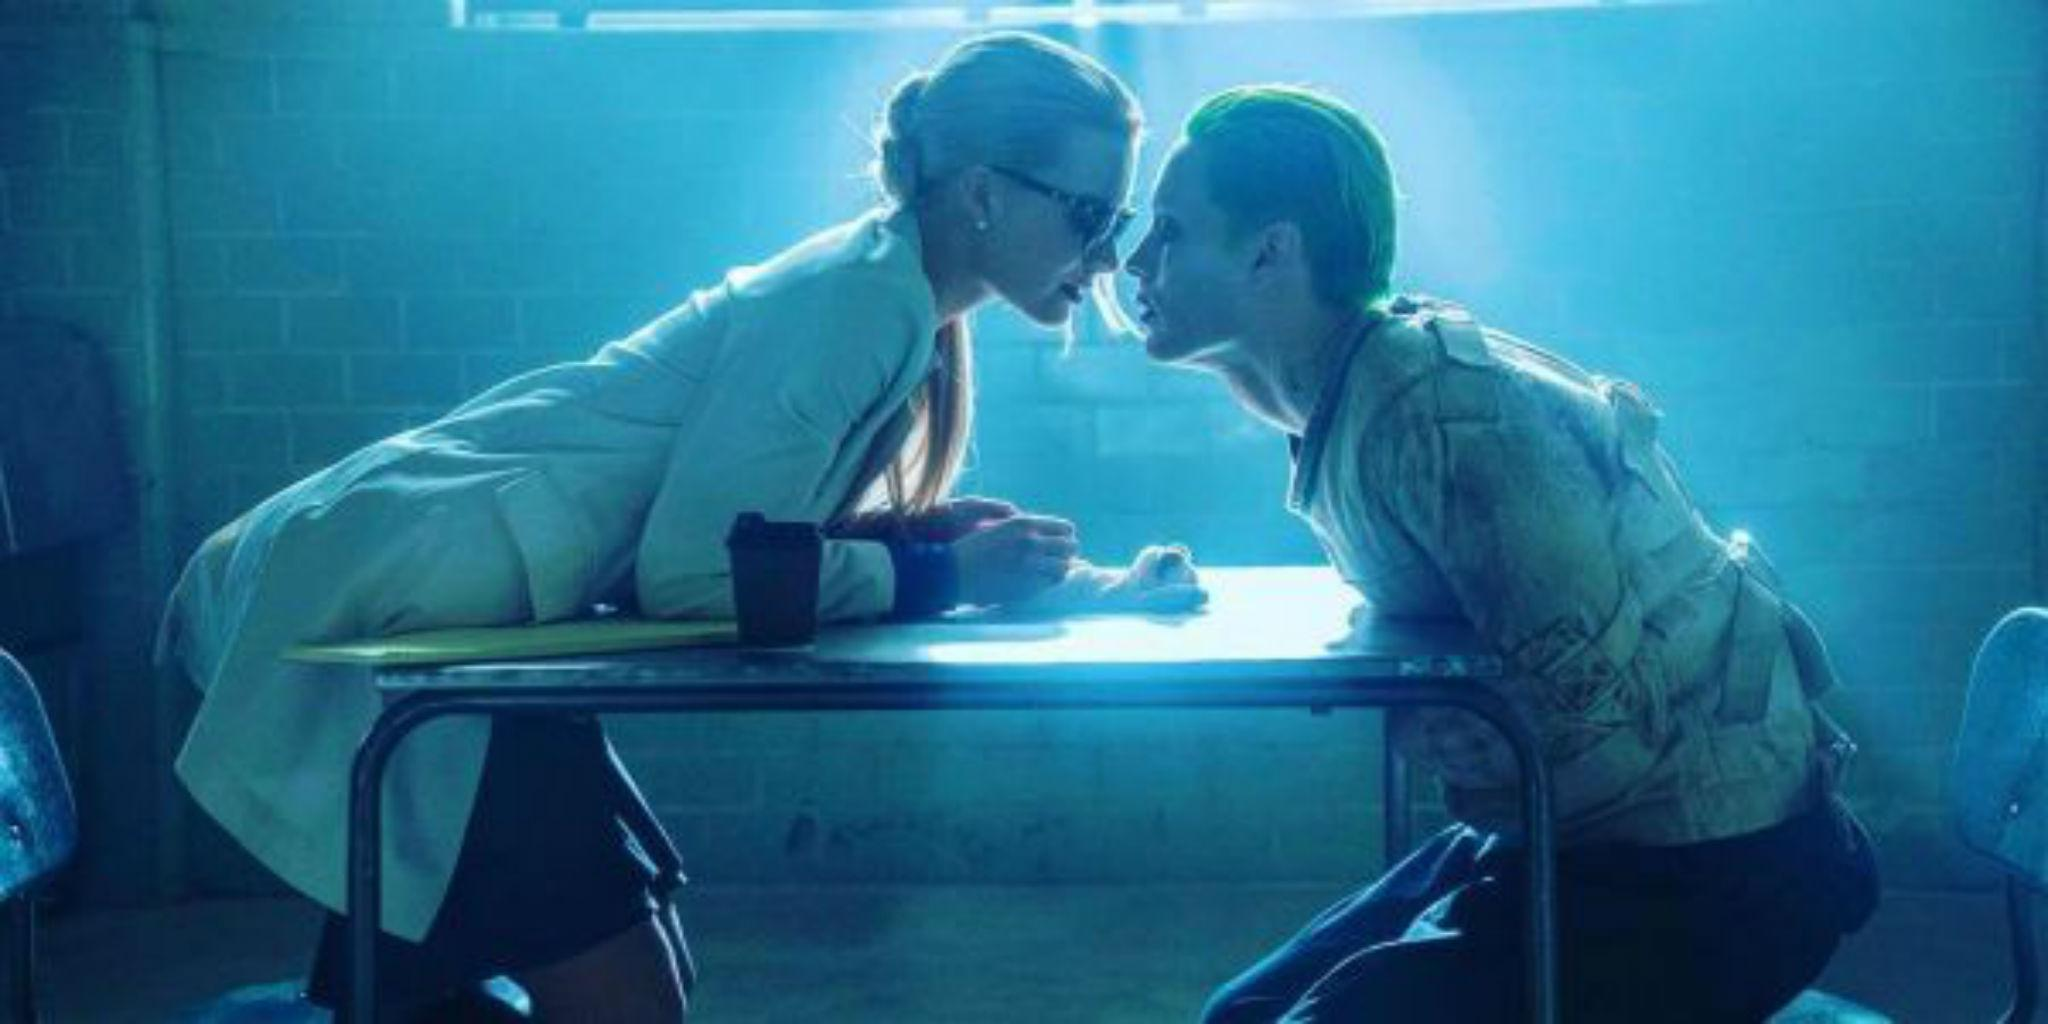 Suicide Squad's Joker and Harley are Getting Their Own Movie